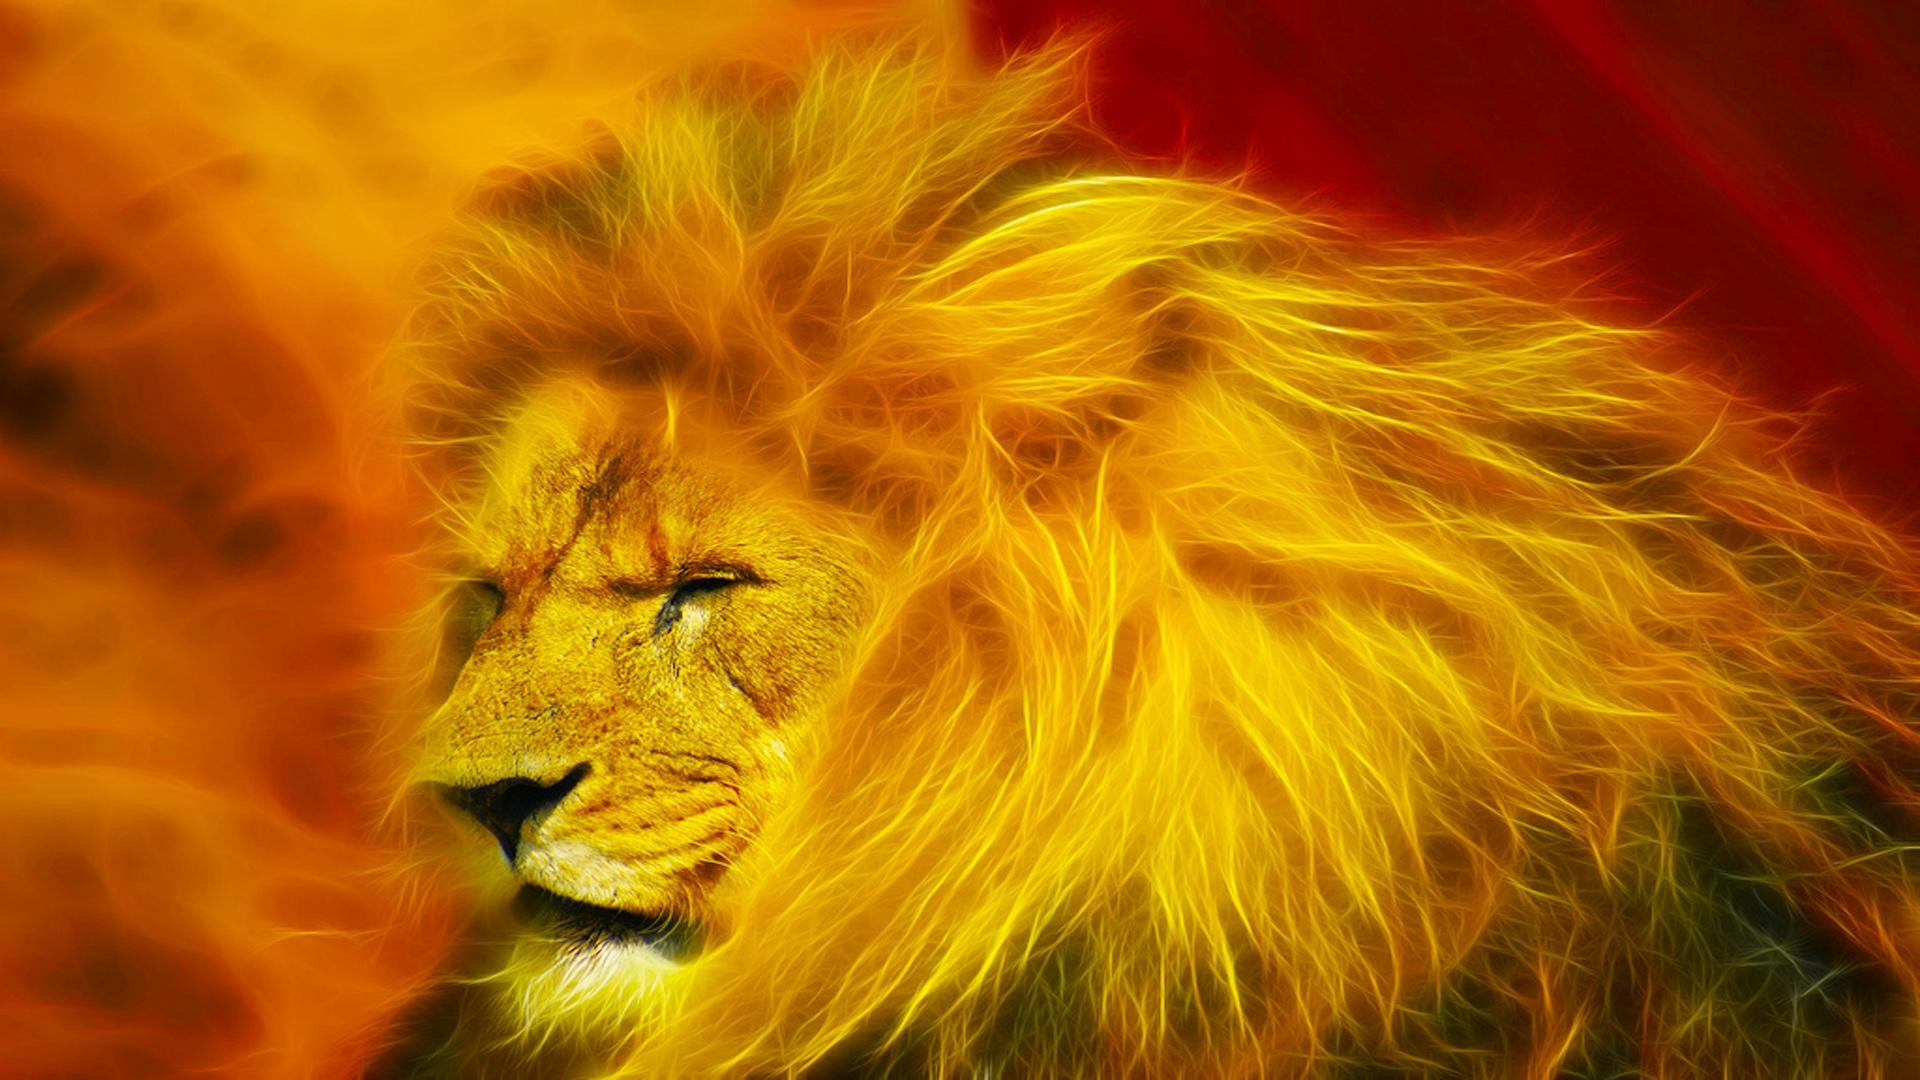 All About Lion Hd Wallpapers Free Wallpaper Downloads Lion Hd